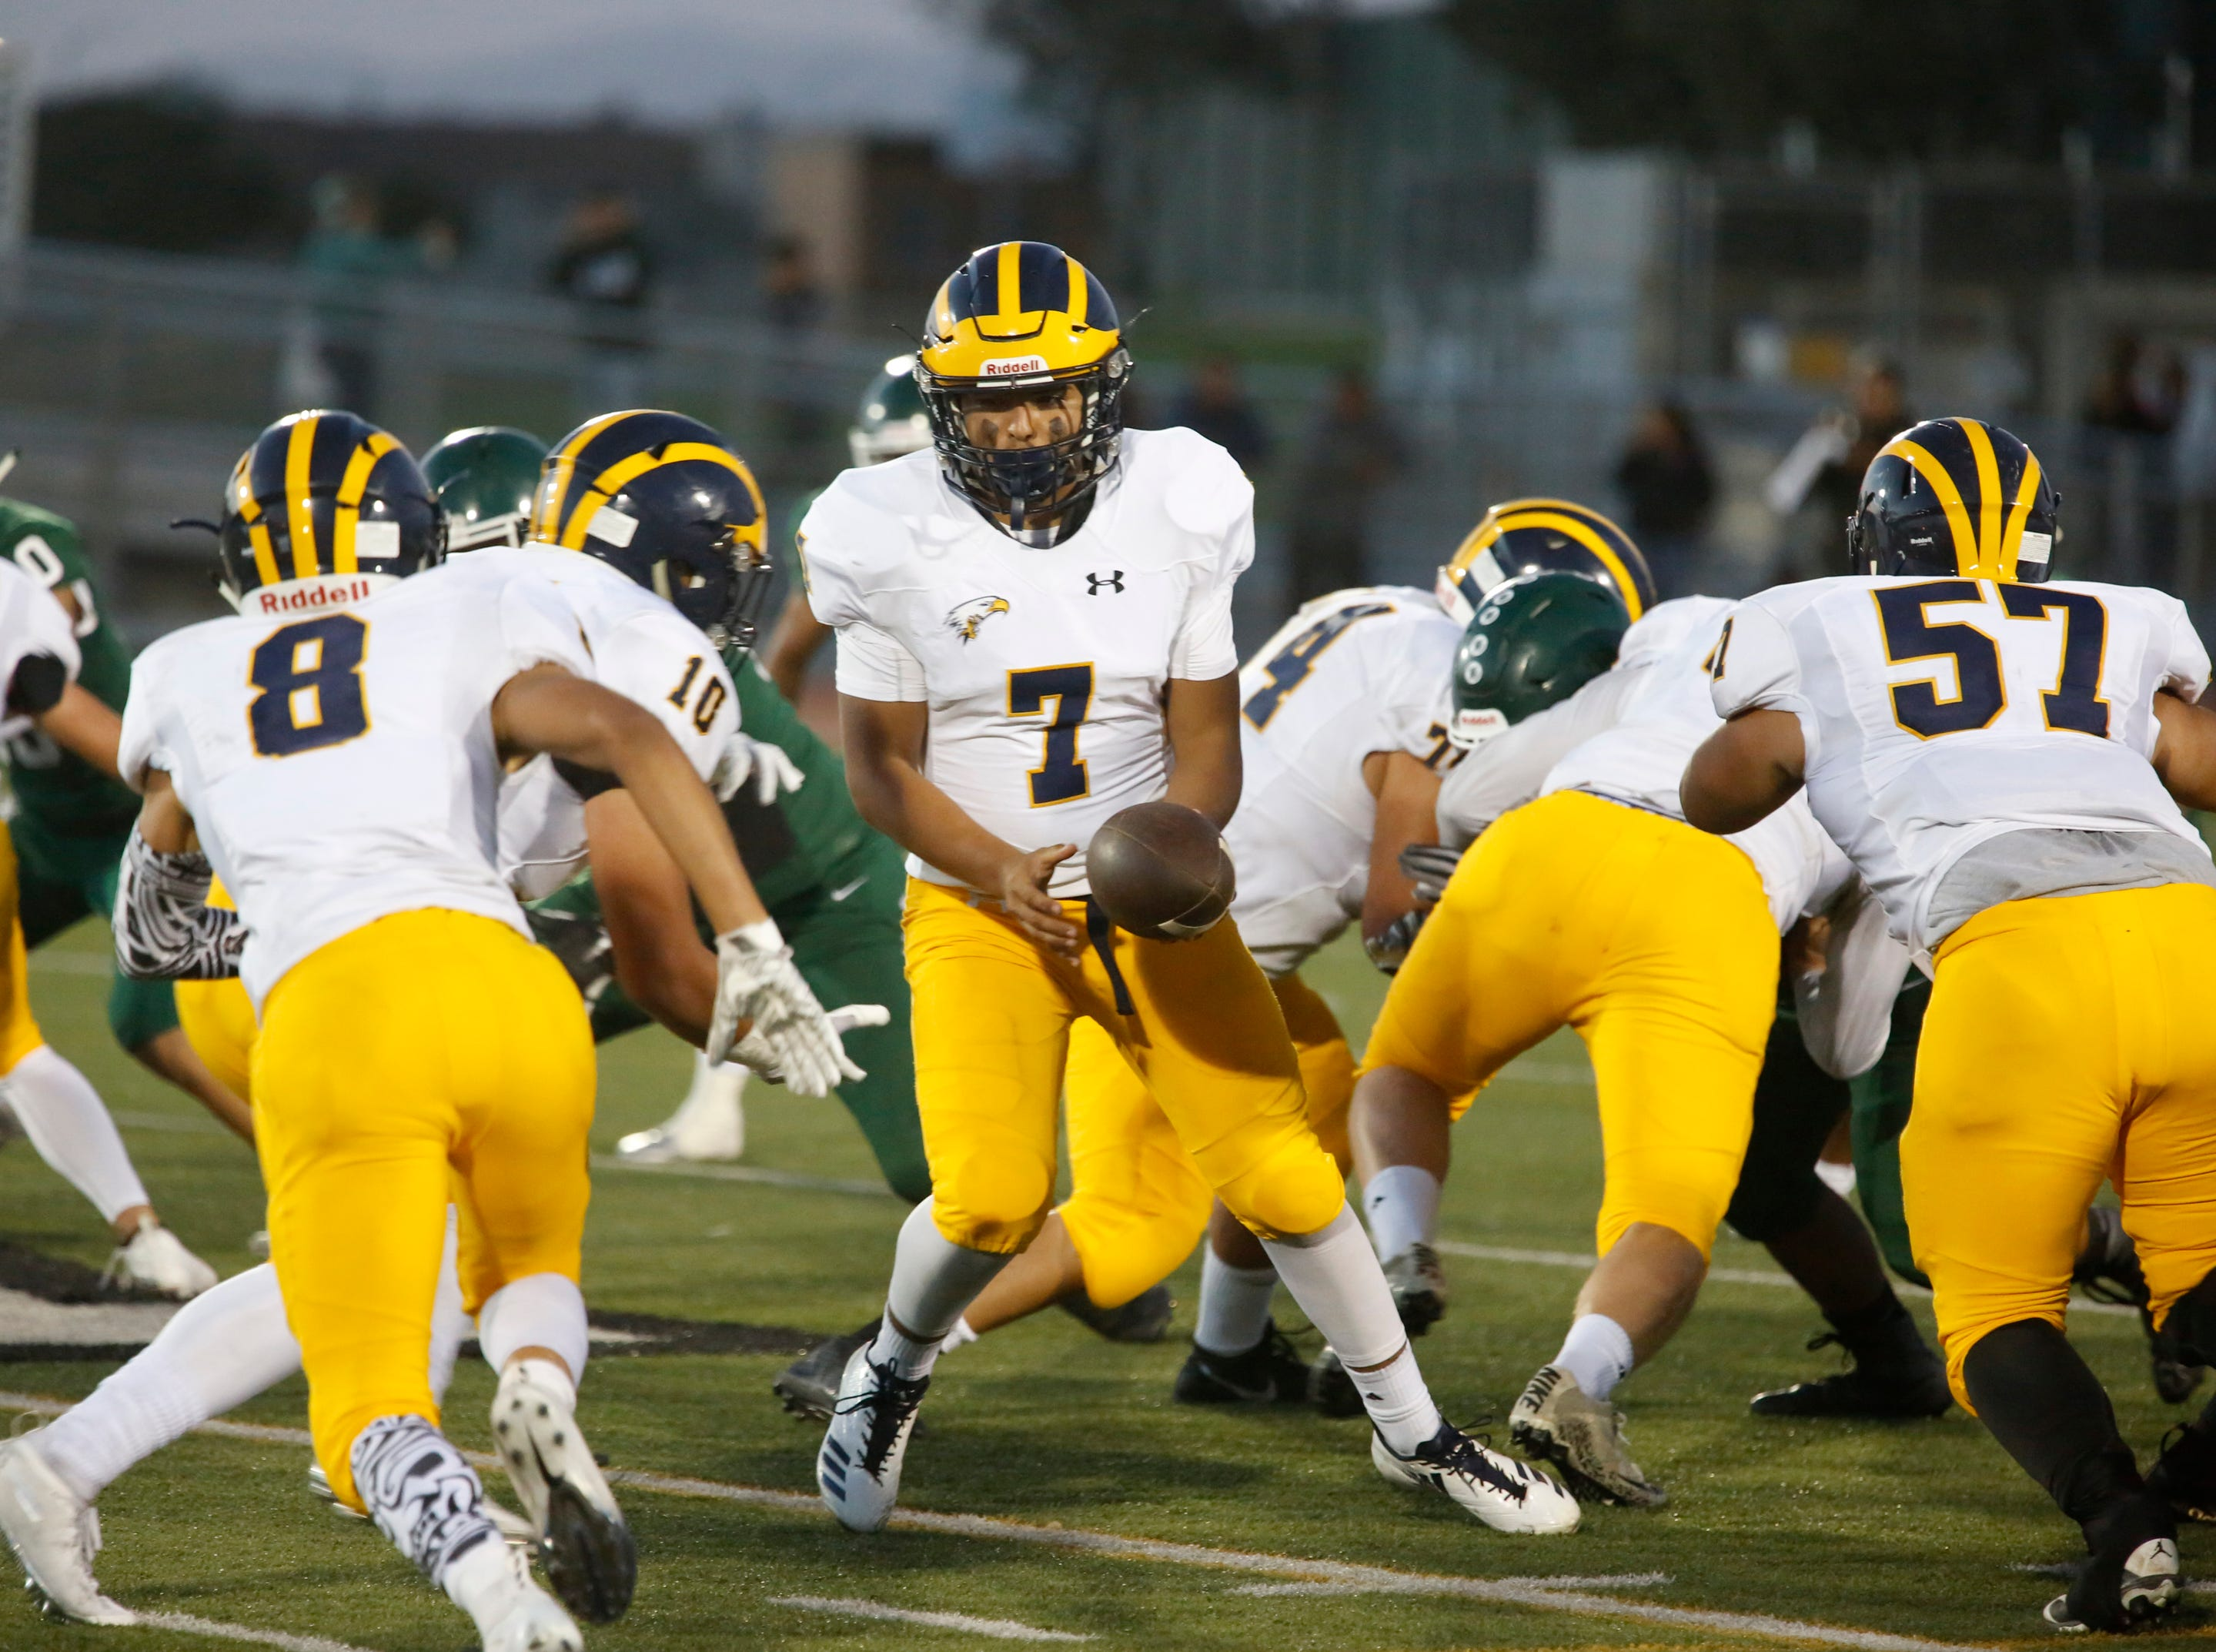 Everett Alvarez's quarterback Ben Perez prepares to hand off during football at Alisal High School in Salinas on Friday August 31, 2018. (Photo By David Royal)